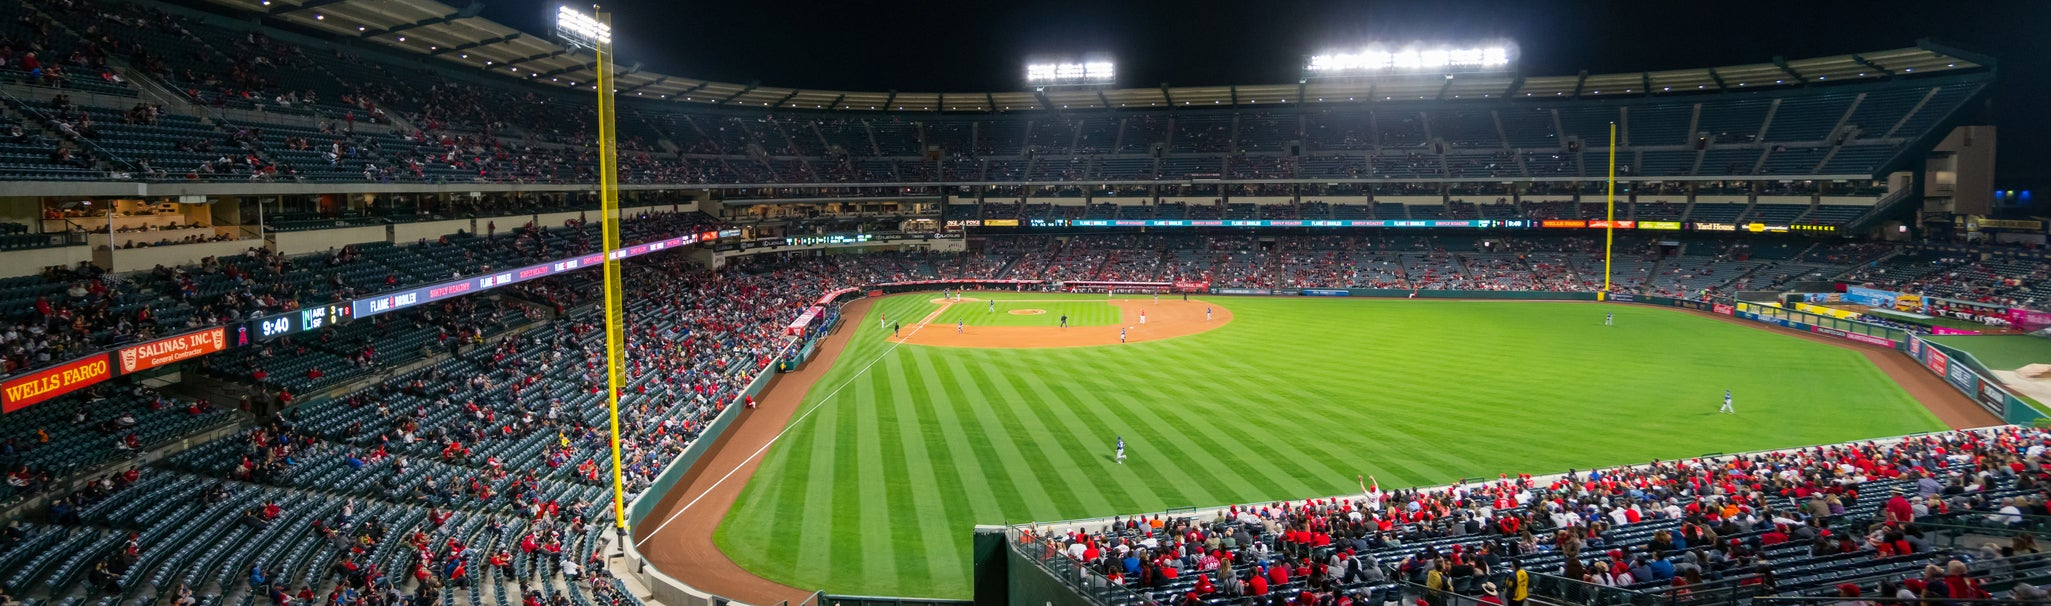 Seat view from Right Field Pavilion